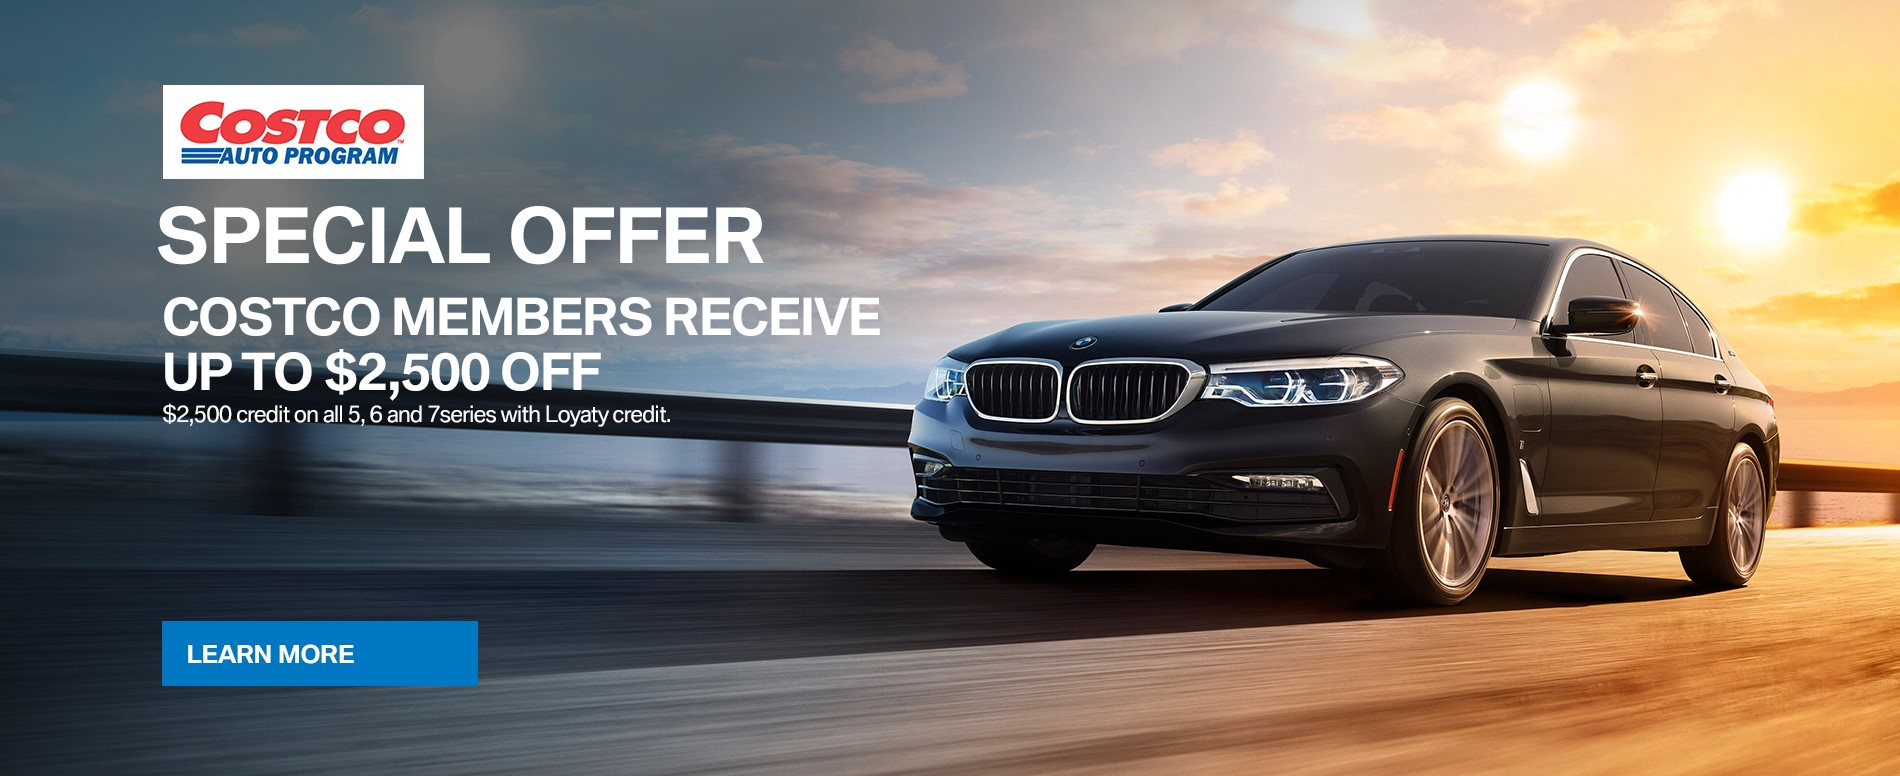 Costco Auto Program >> Bmw Costco Auto Program Braman Bmw West Palm Beach